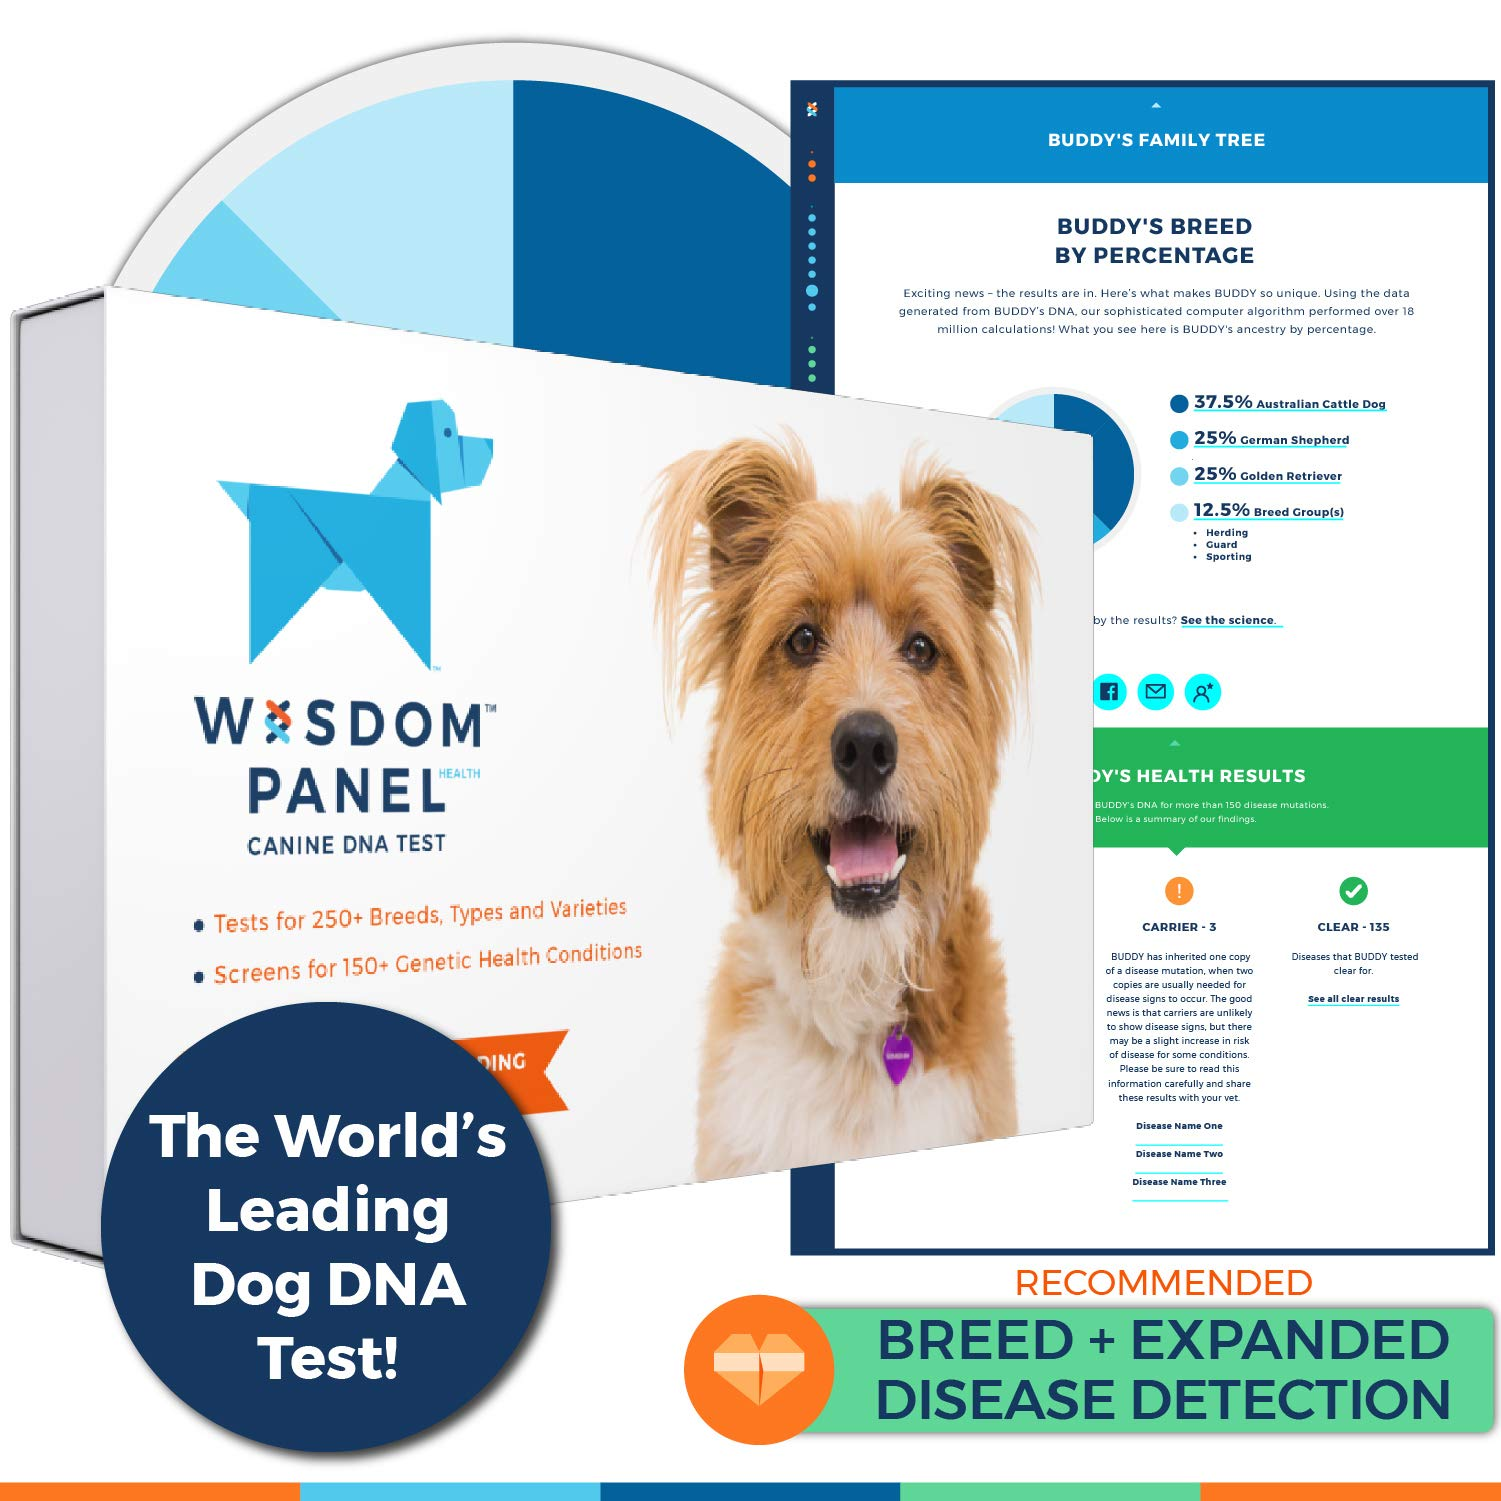 Wisdom Panel Health Canine DNA Test - Dog DNA Test Kit for Breed, Ancestry and Genetic Health Information by Wisdom Health